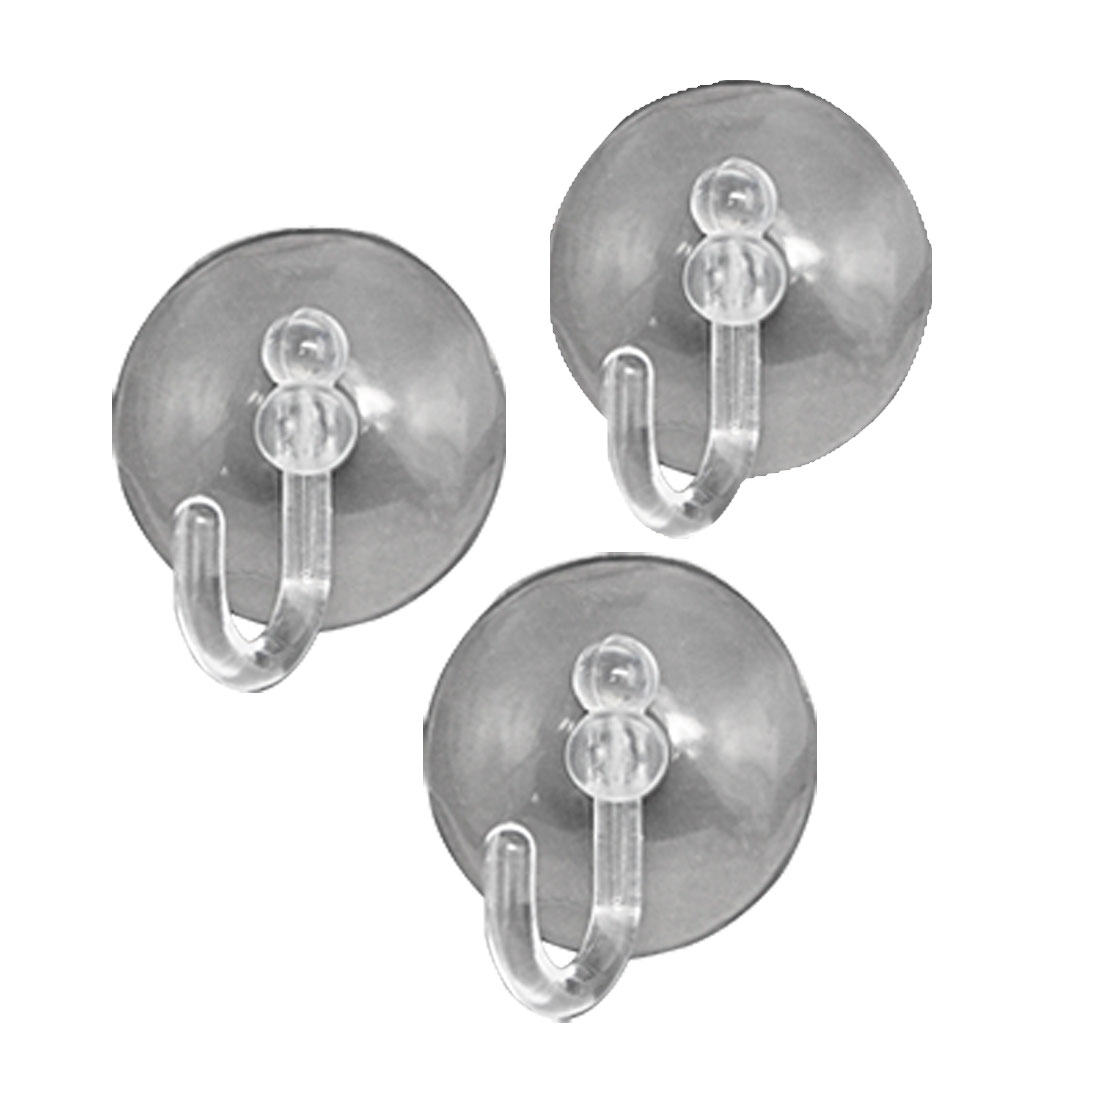 3pcs White Suction Cup Wall Hooks For Towels Bathroom Kitchen